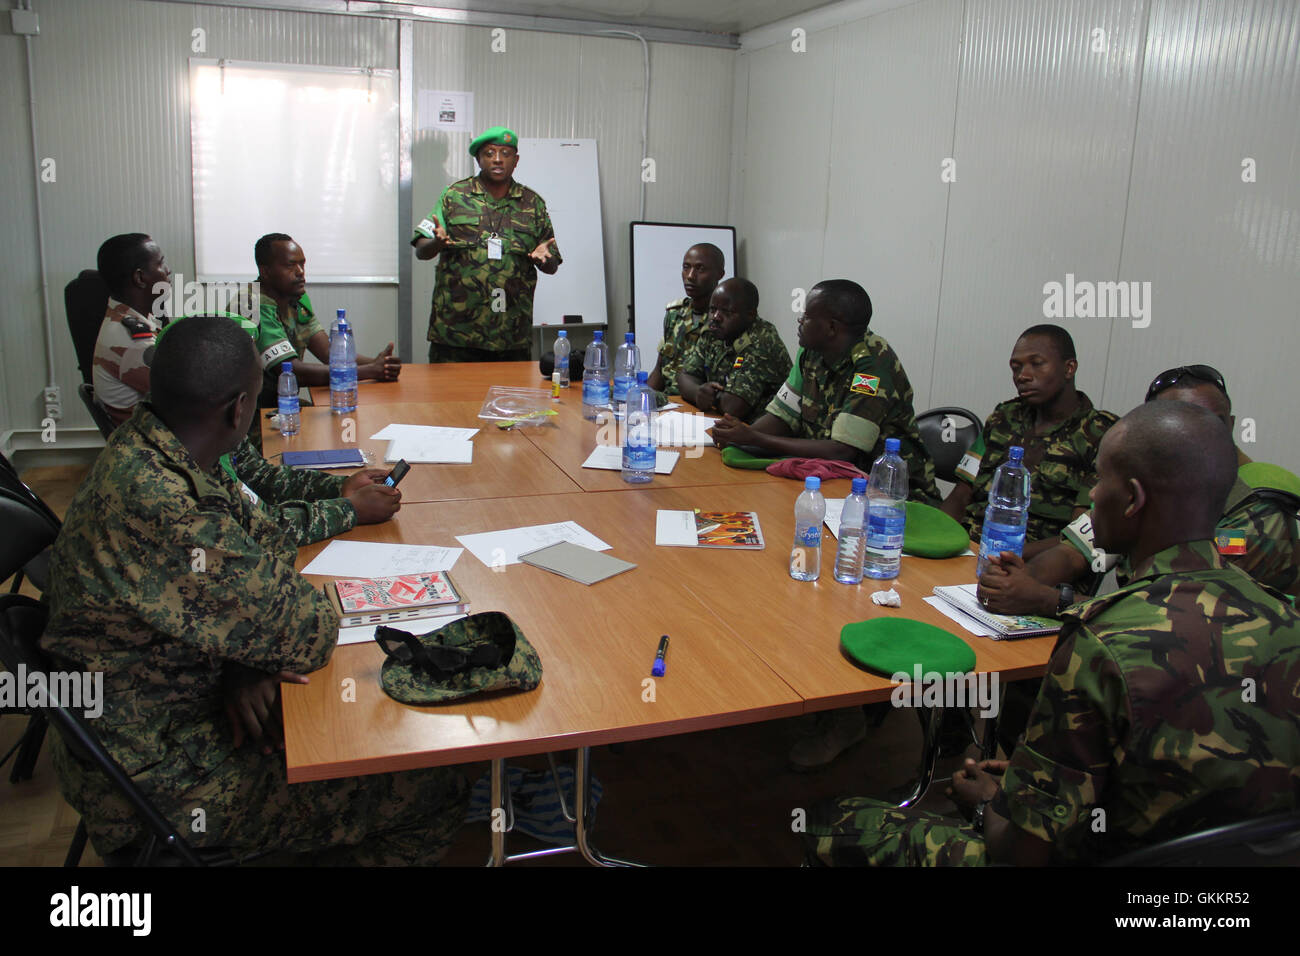 The AMISOM Force Spokesperson, Lt Col. Paul Njuguna speaks during a radio communication training for AMISOM Public Stock Photo